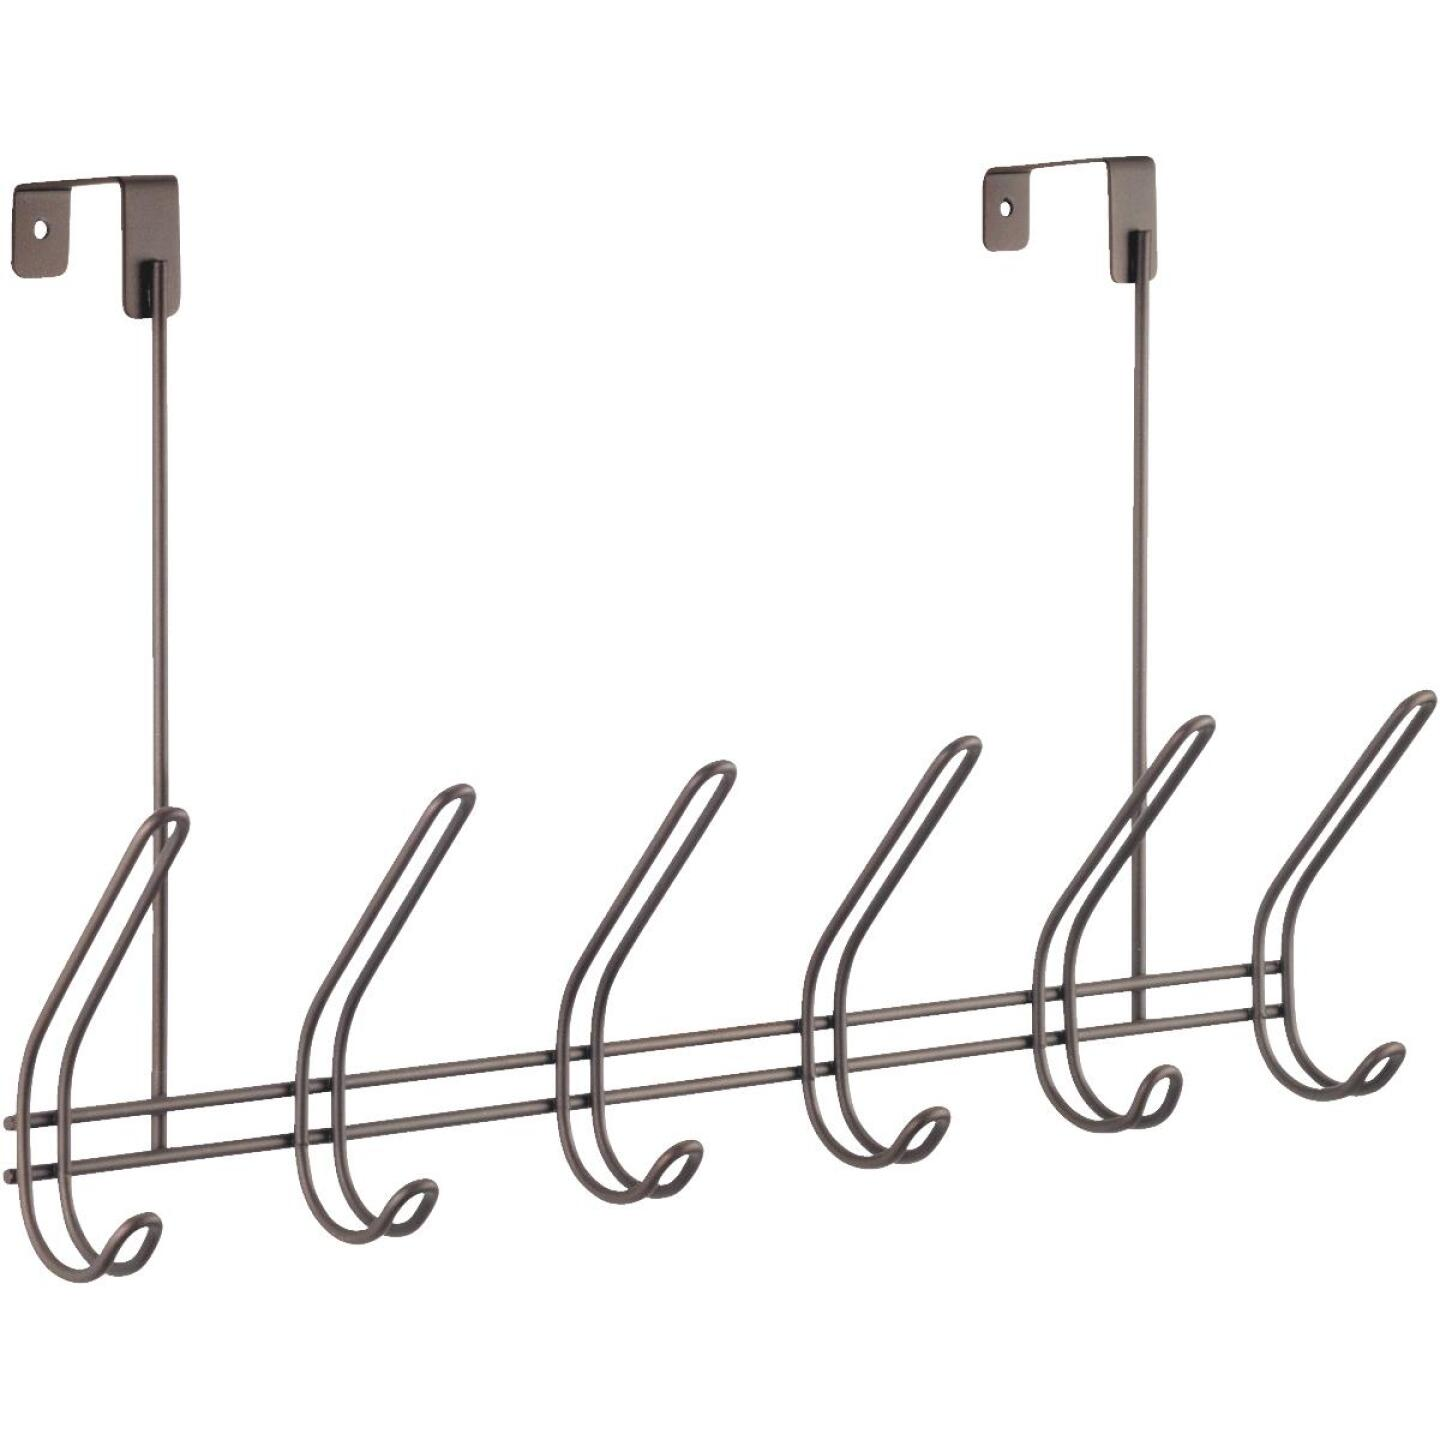 iDesign Classico Over-The-Door Bronze 6-Hook Rail Image 1